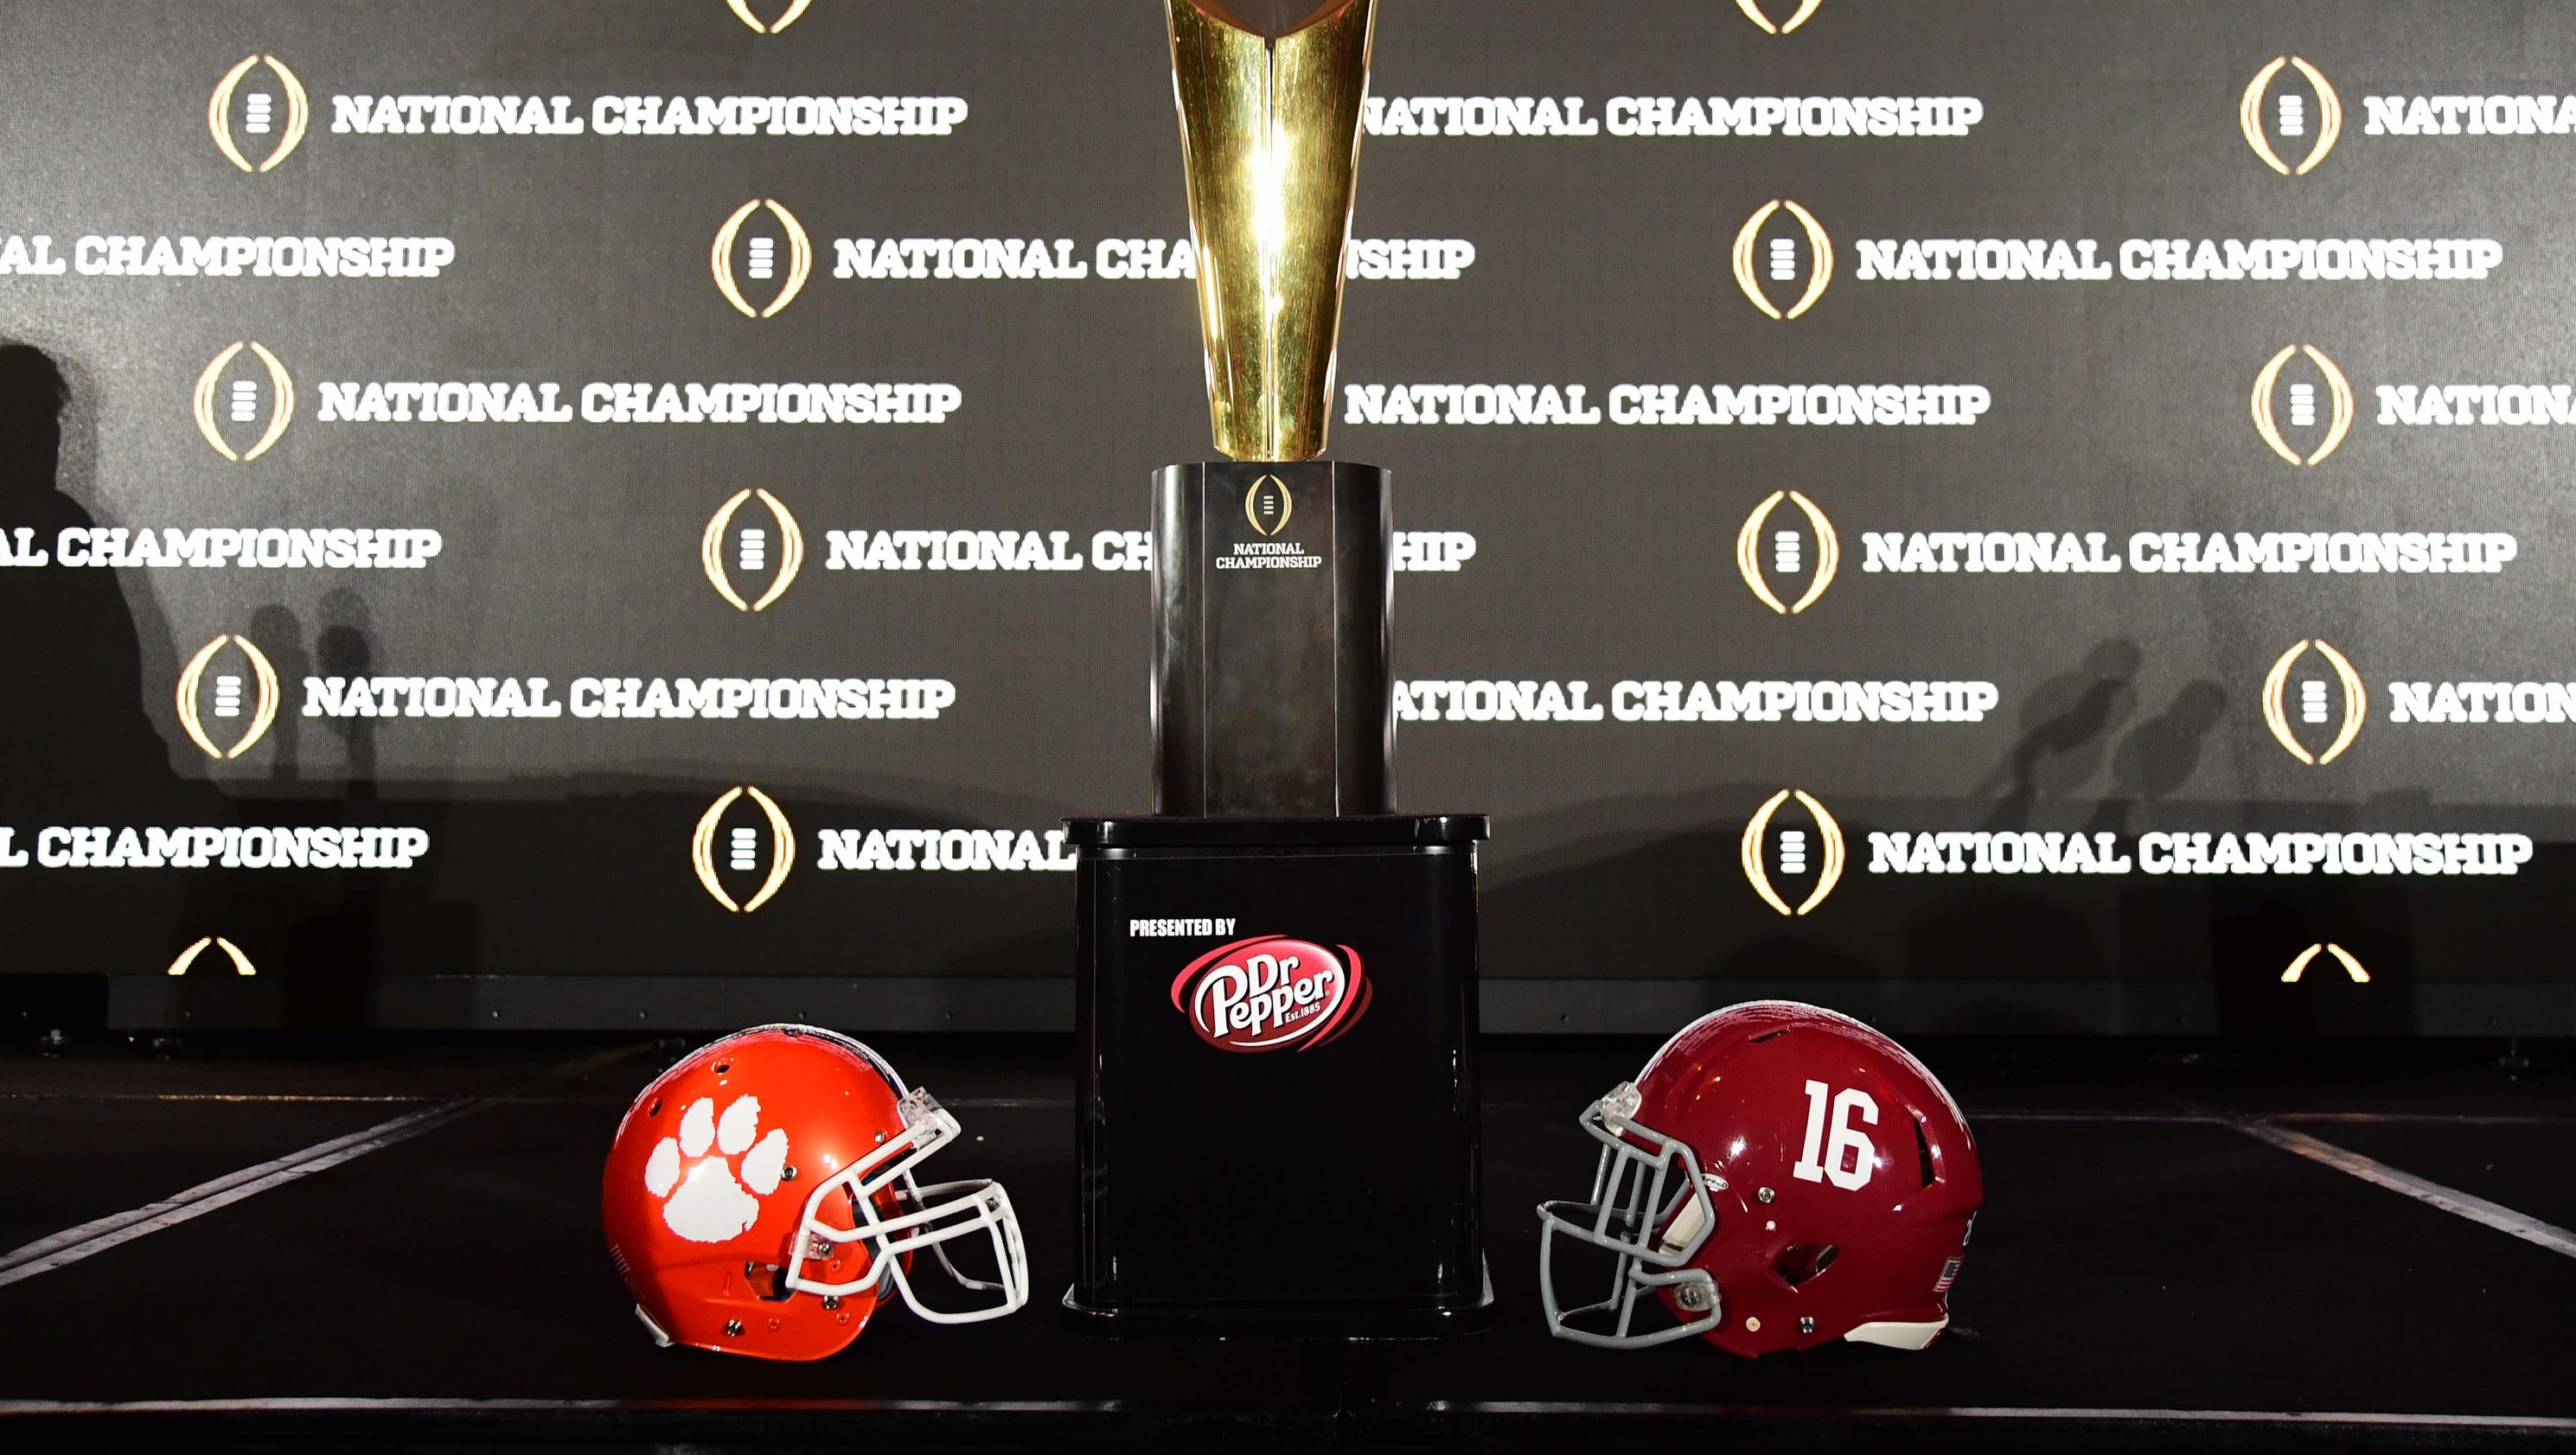 football schedual ncaaf national champions